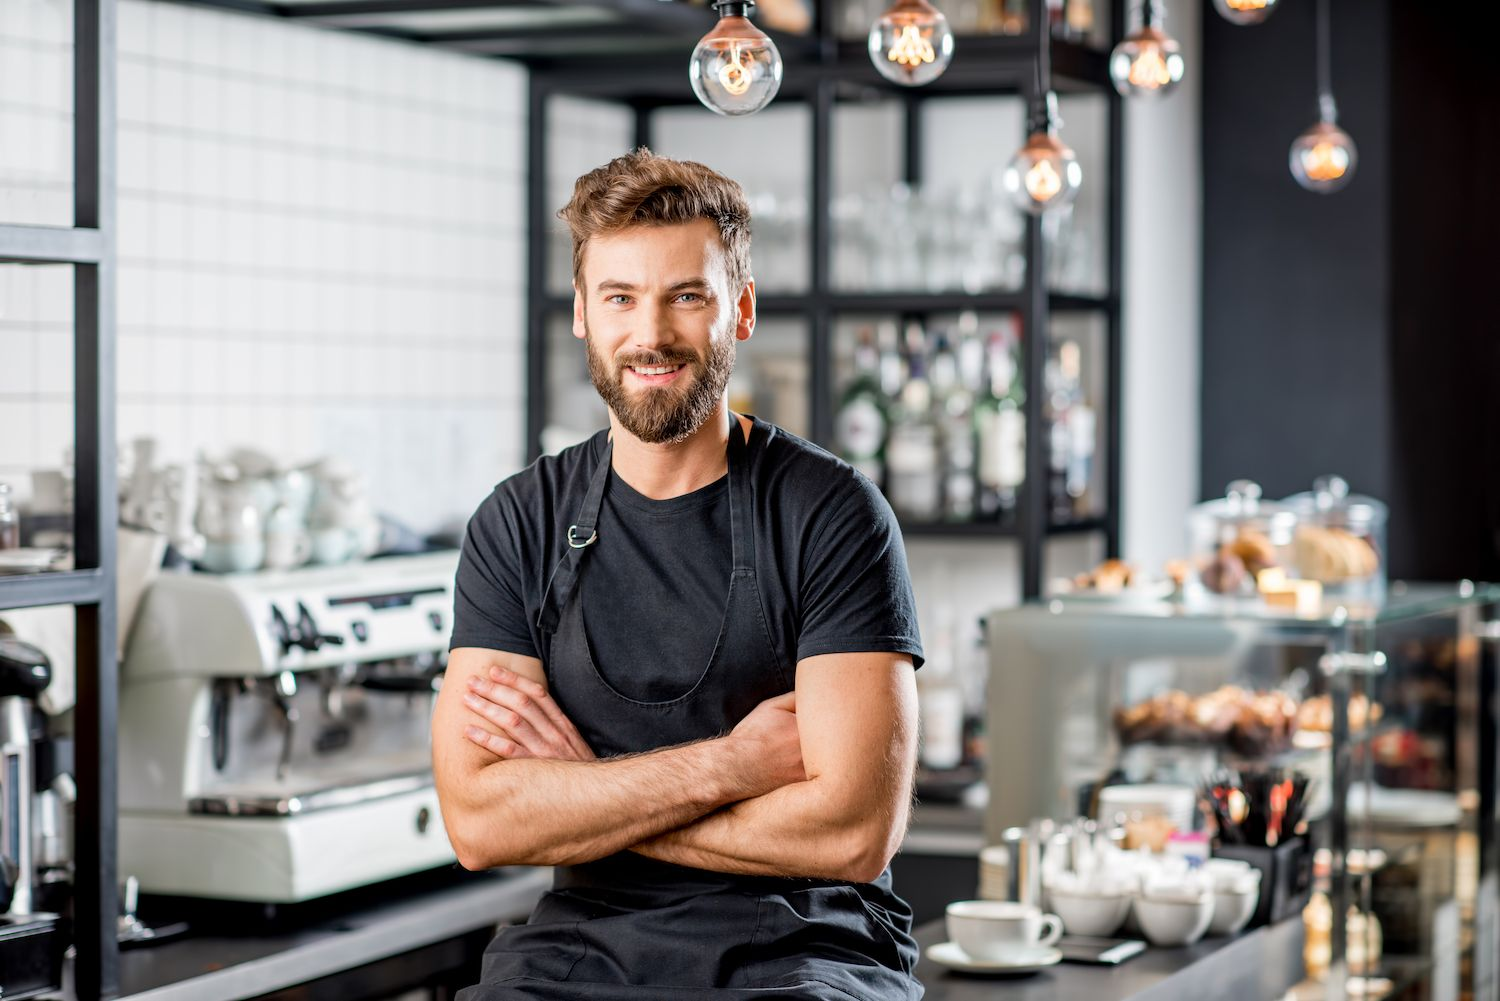 Getting Through COVID-19: Financial, Physical, and Mental Health Tips for Restaurant Employees